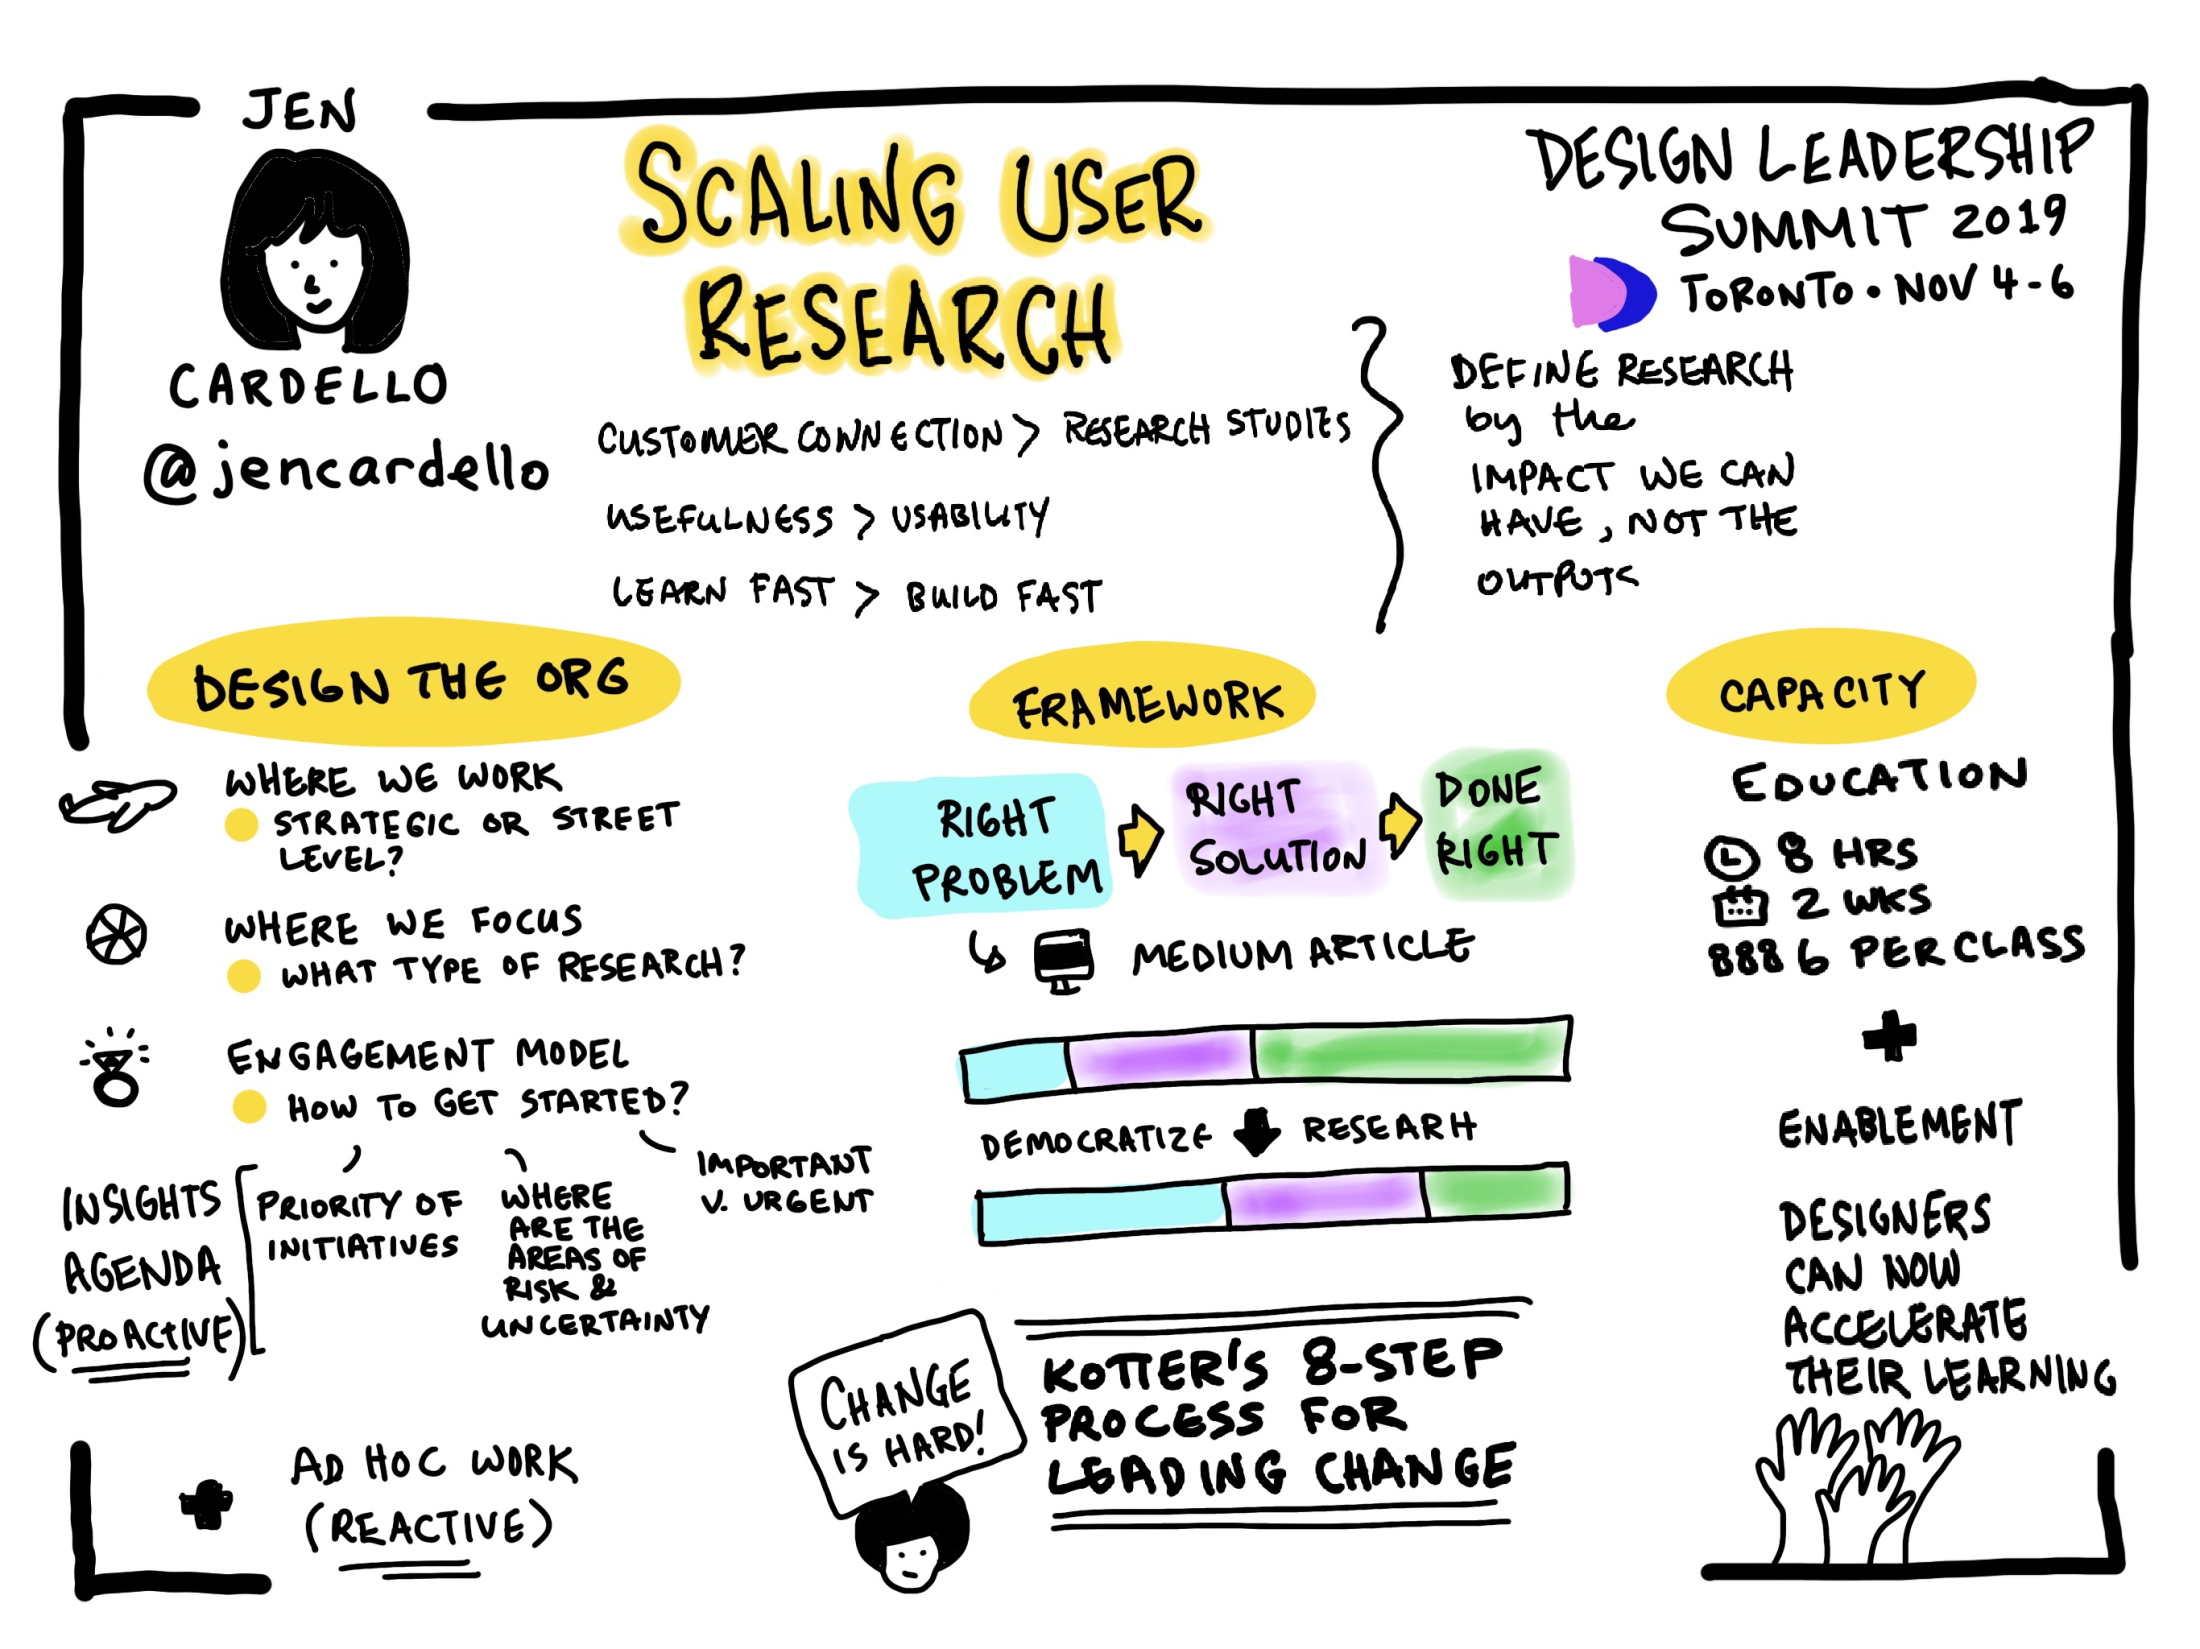 sketchnote by jen cardello about scaling user research